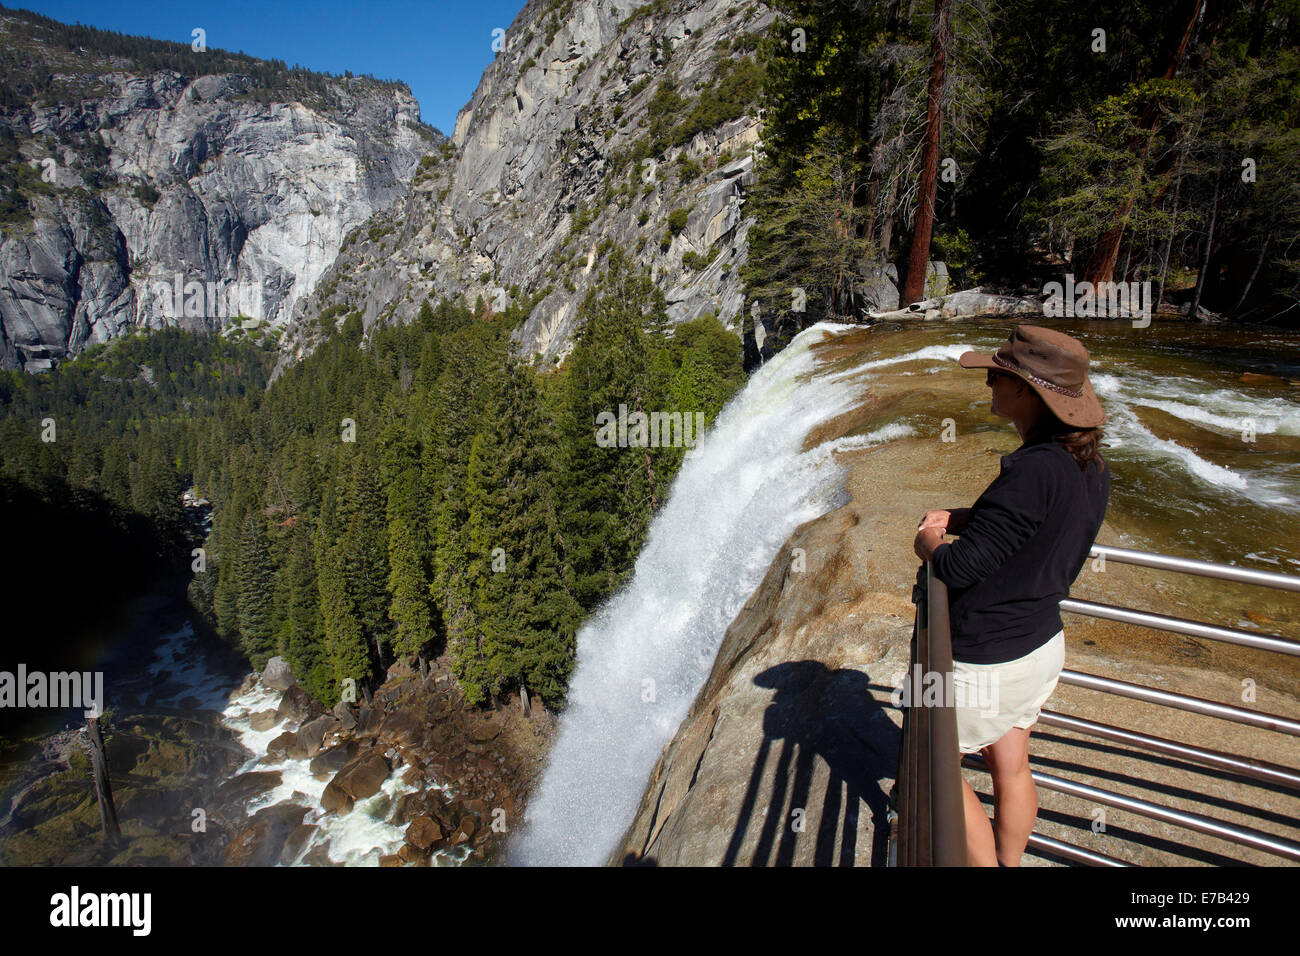 Tourist at Vernal Fall, The Mist Trail, Yosemite National Park ...